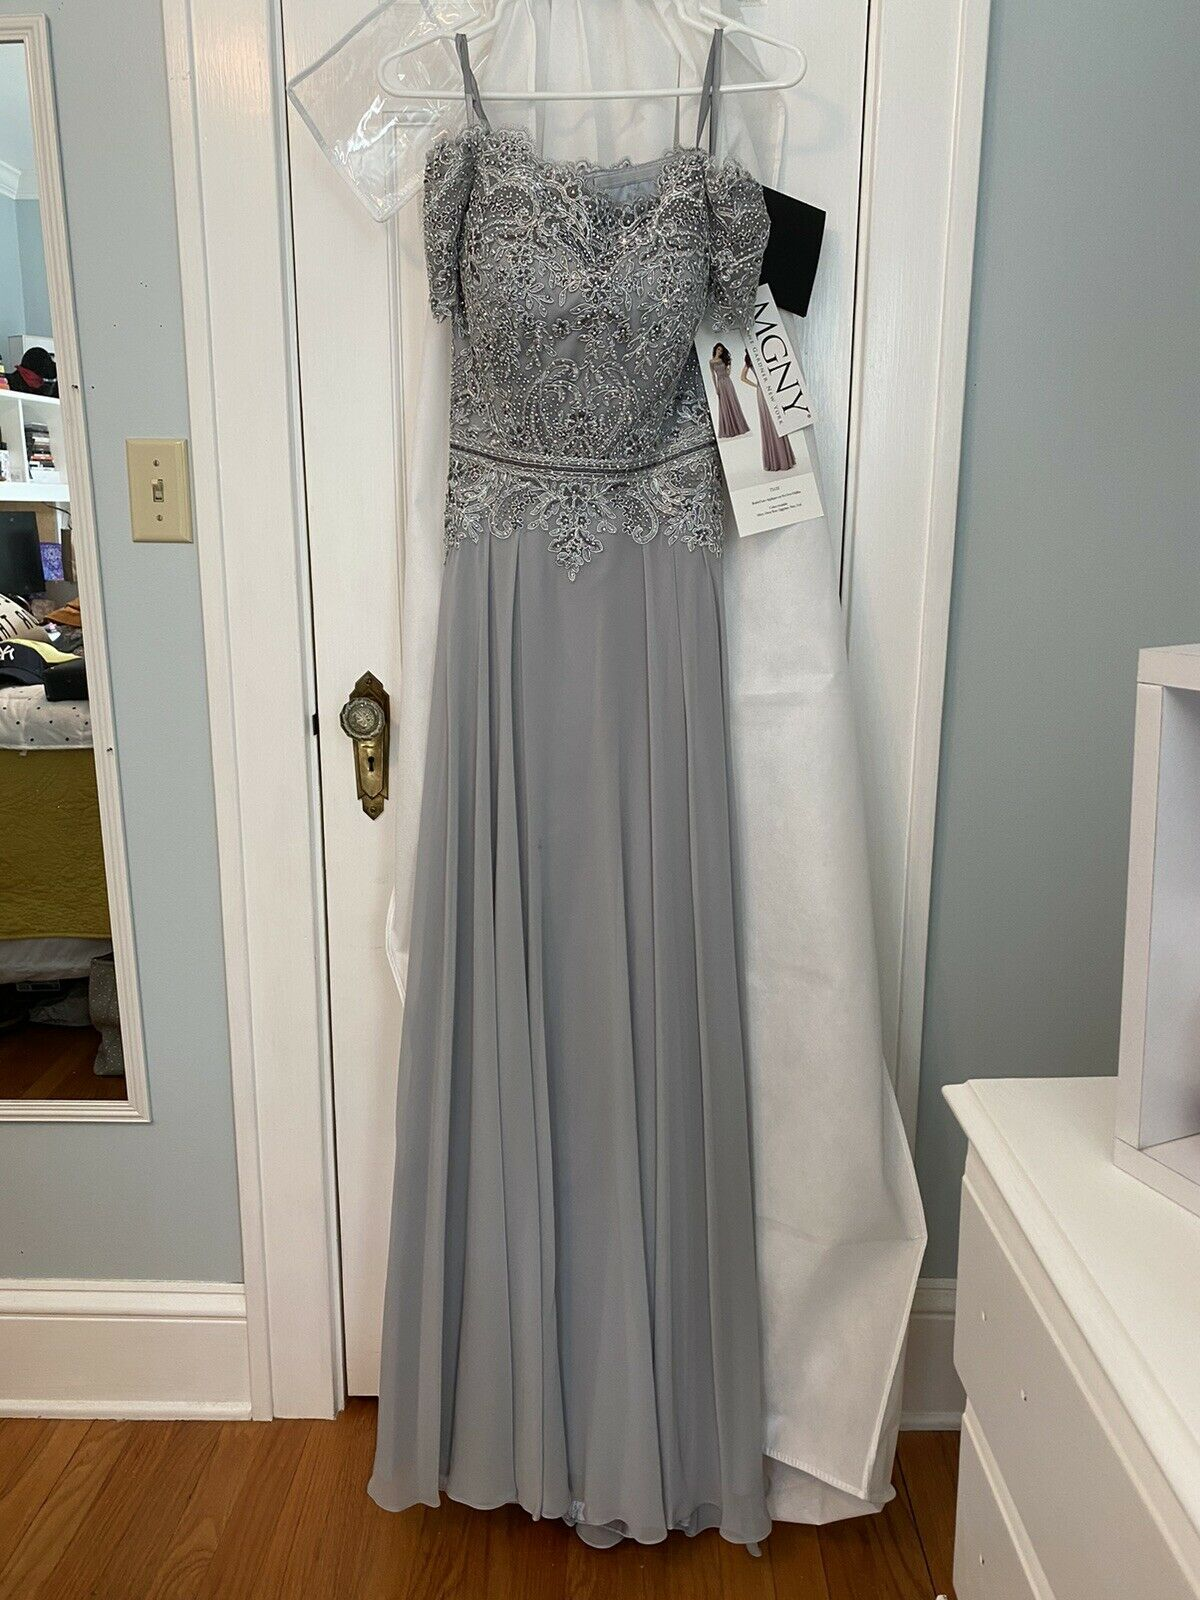 MGNY Chiffon Beaded Evening Gown in Silver Size 4